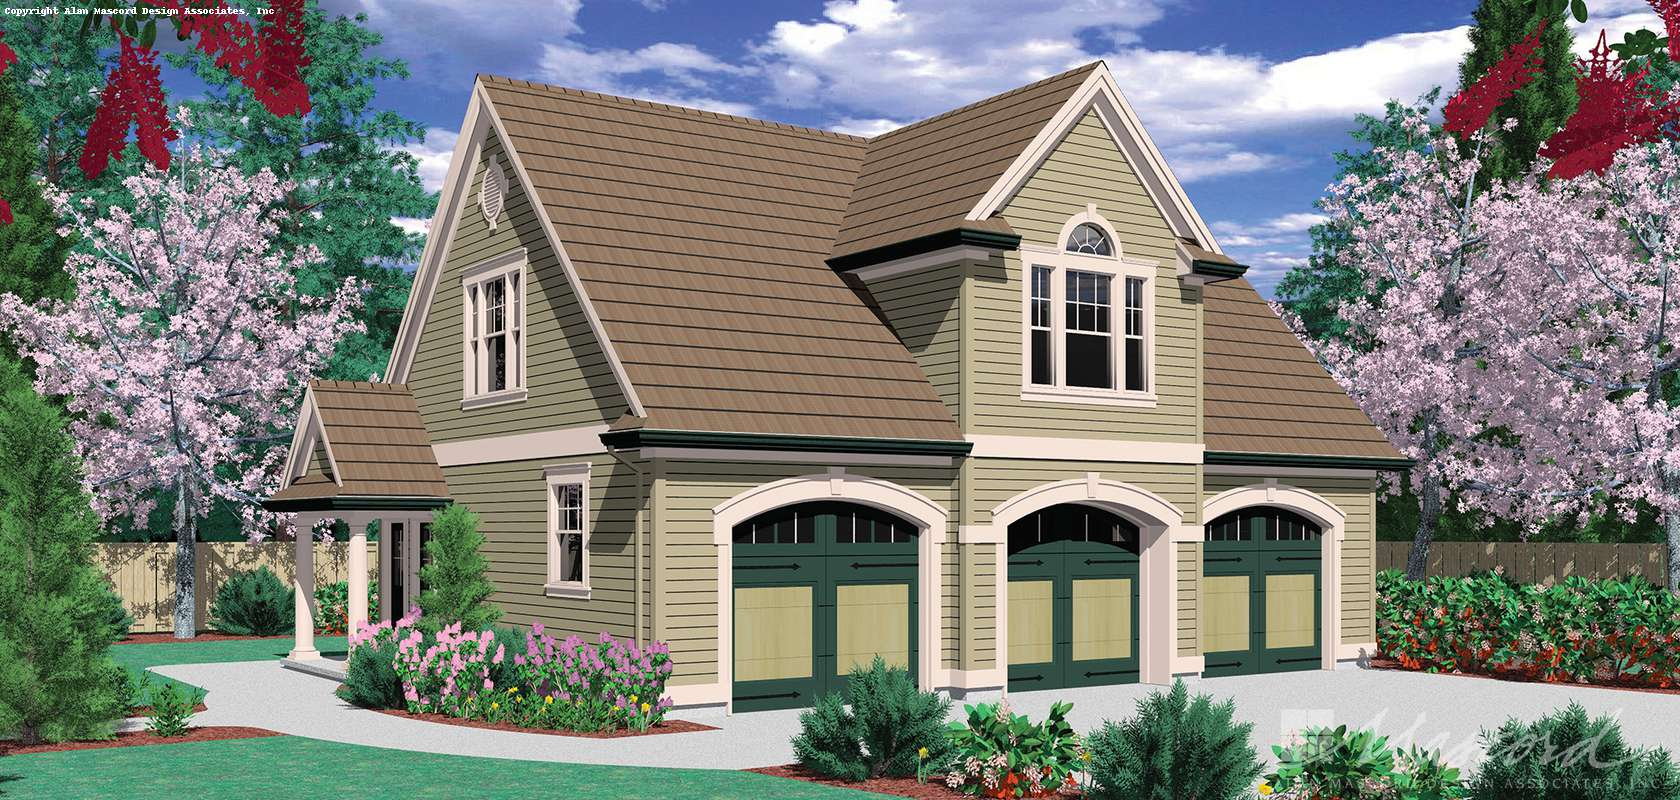 Mascord House Plan 5016B: The Eastman